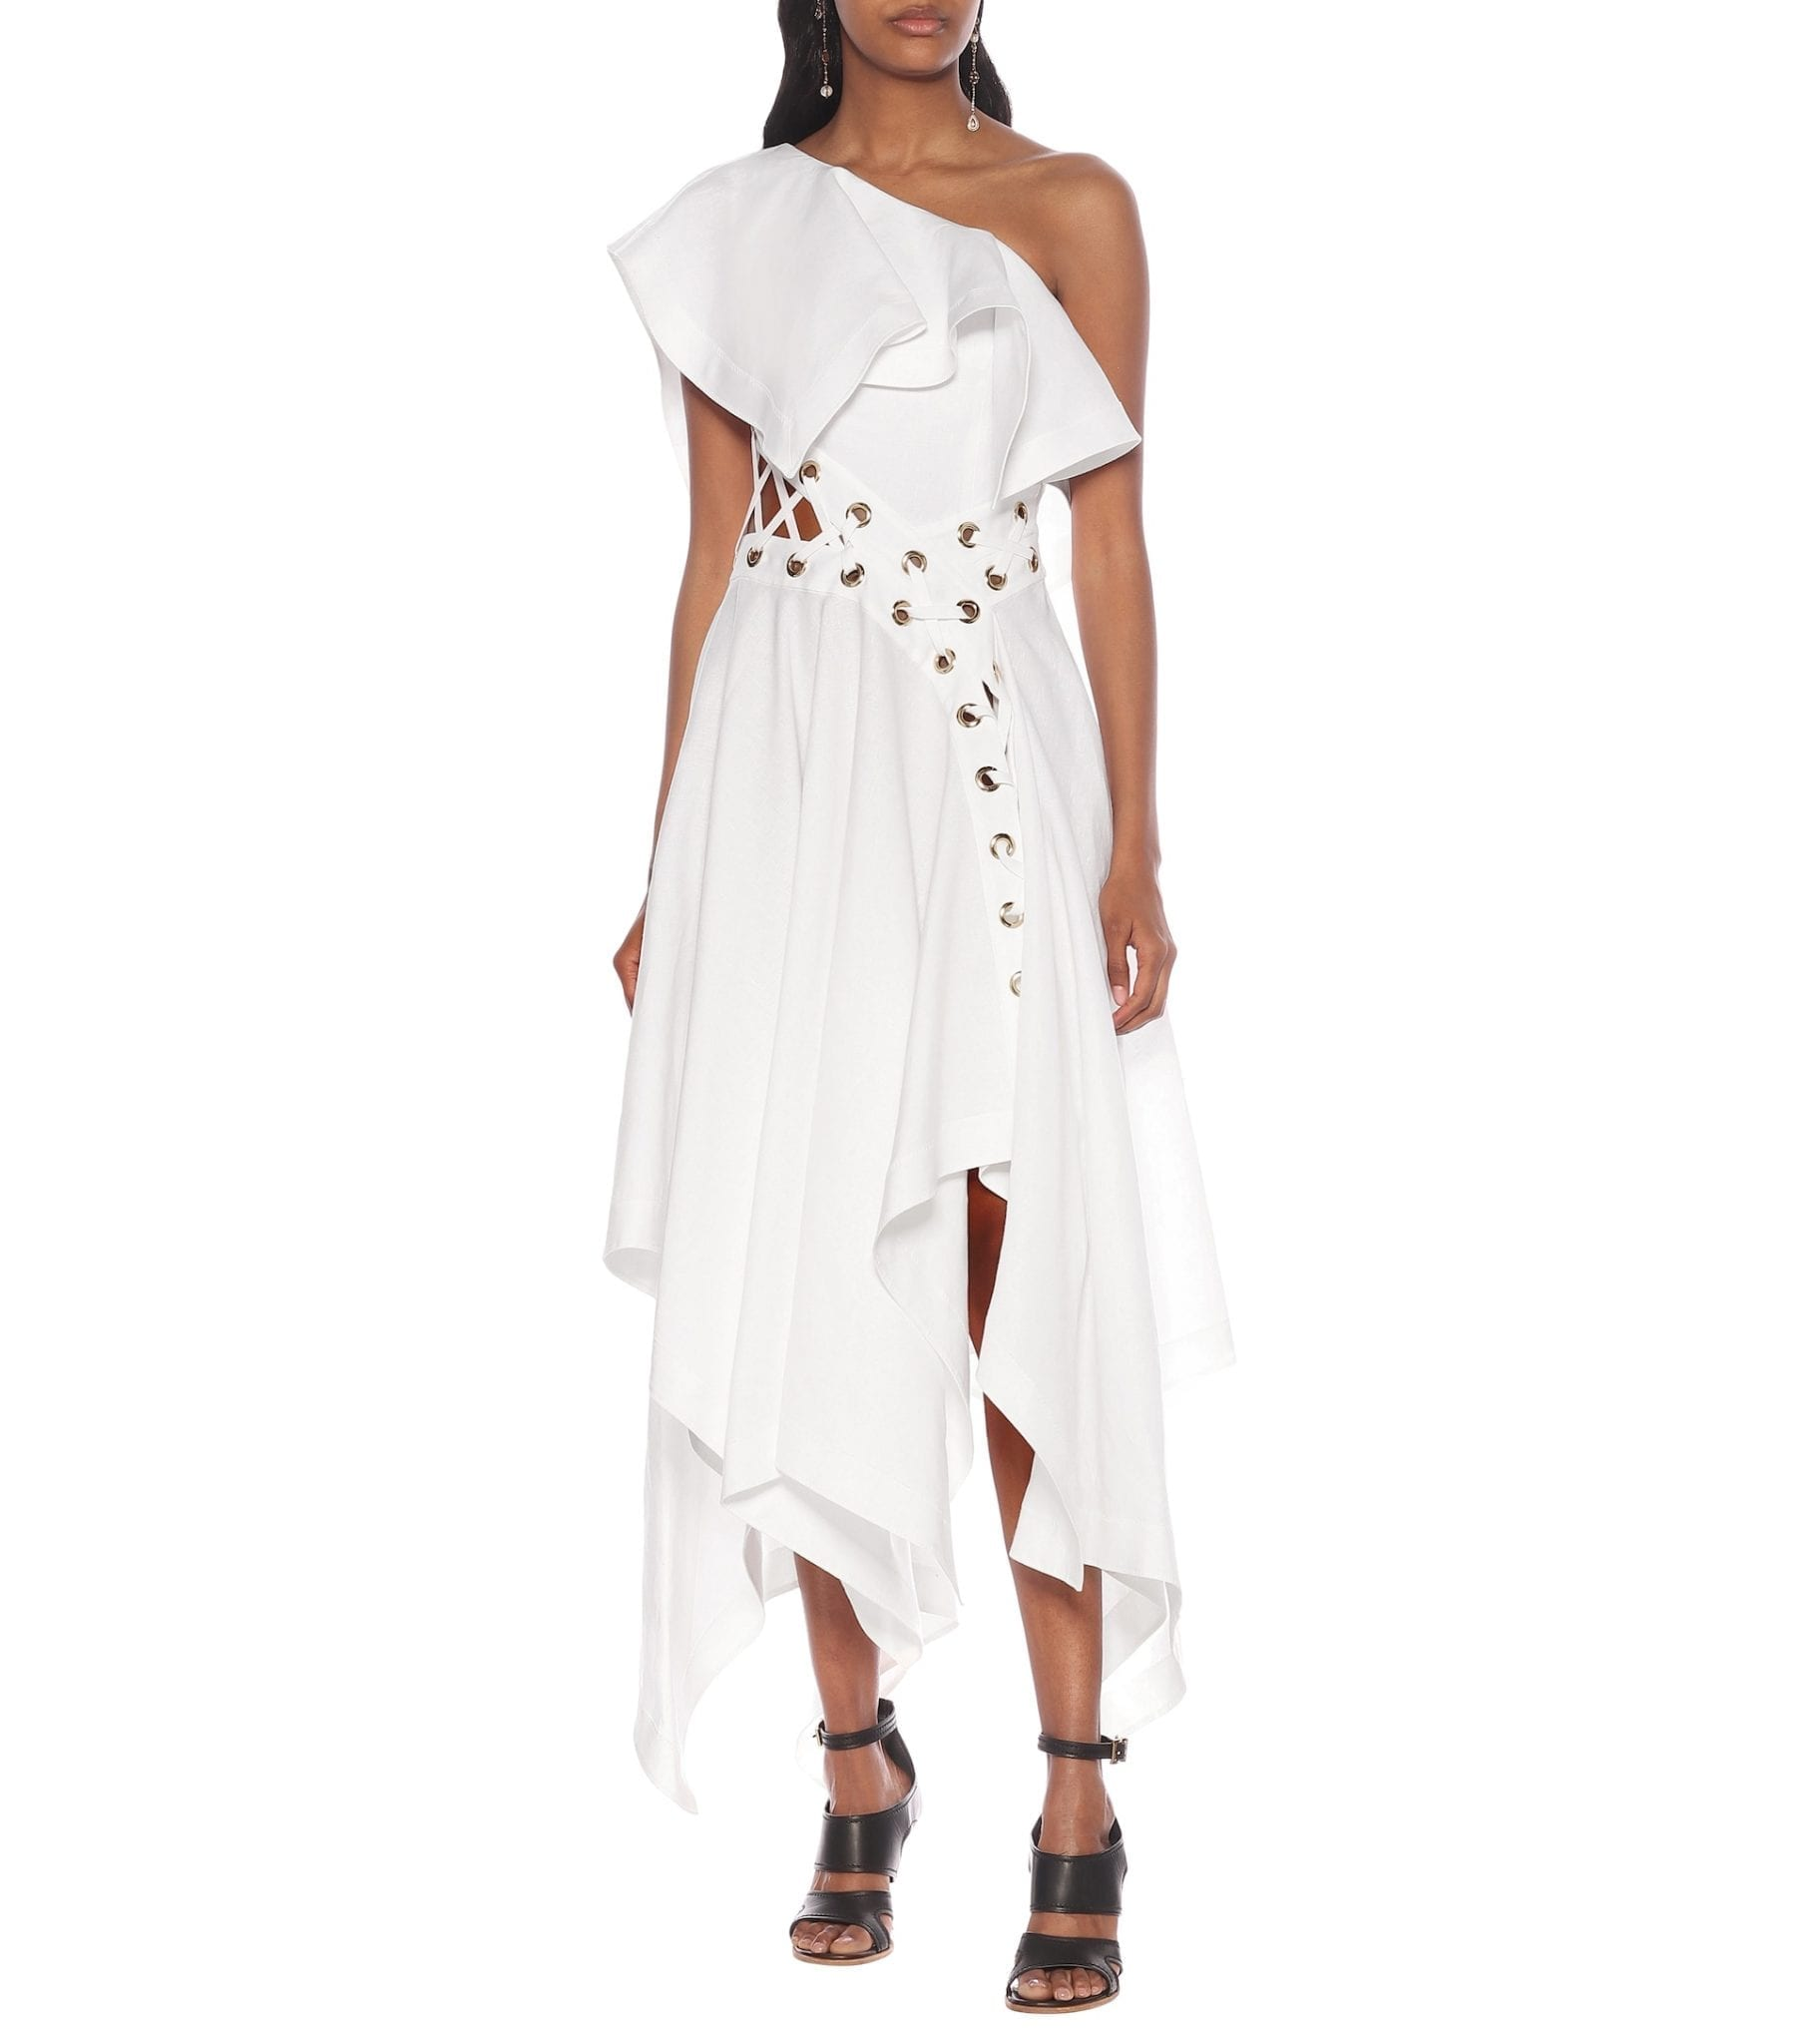 ALEXANDER MCQUEEN One-shoulder Linen Dress